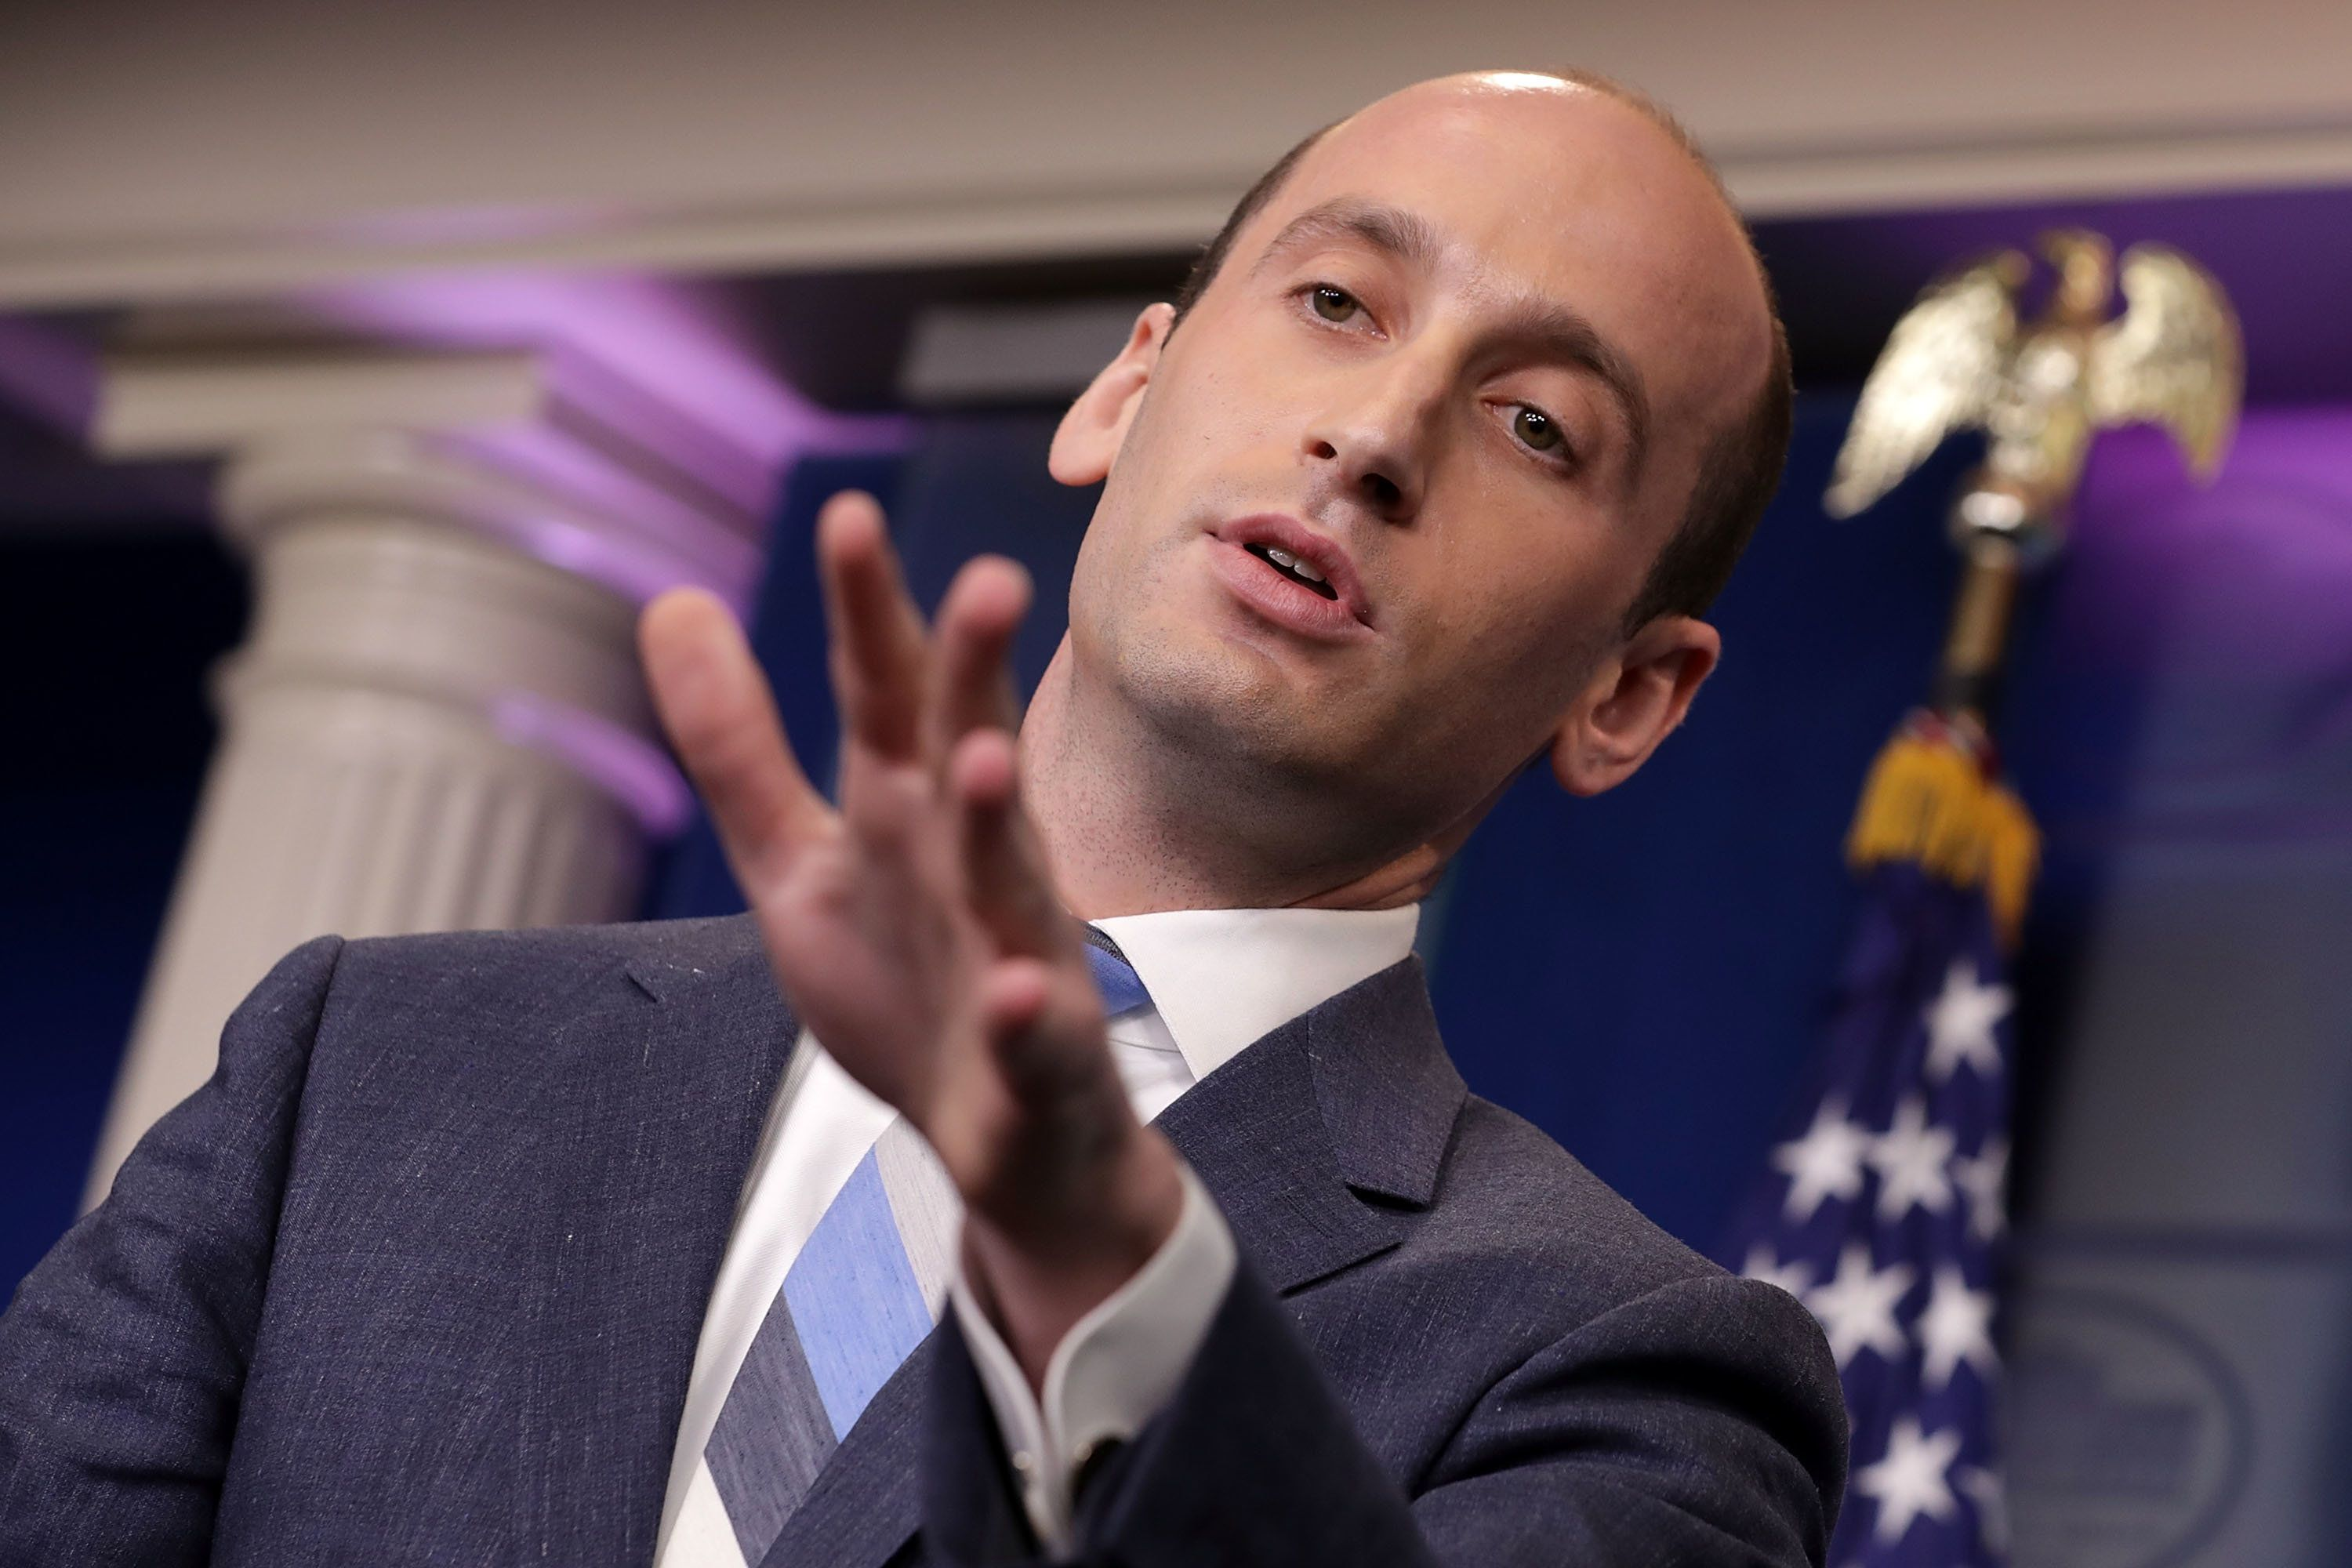 WASHINGTON, DC - AUGUST 02:  Senior Advisor to the President for Policy Stephen Miller talks to reporters about President Donald Trump's support for creating a 'merit-based immigration system' in the James Brady Press Briefing Room at the White House August 2, 2017 in Washington, DC. Earlier in the day President Donald Trump signed bipartisan legislation into law placing new sanctions on Russia and reducing his ability to lift the sanctions on Moscow.  (Photo by Chip Somodevilla/Getty Images)